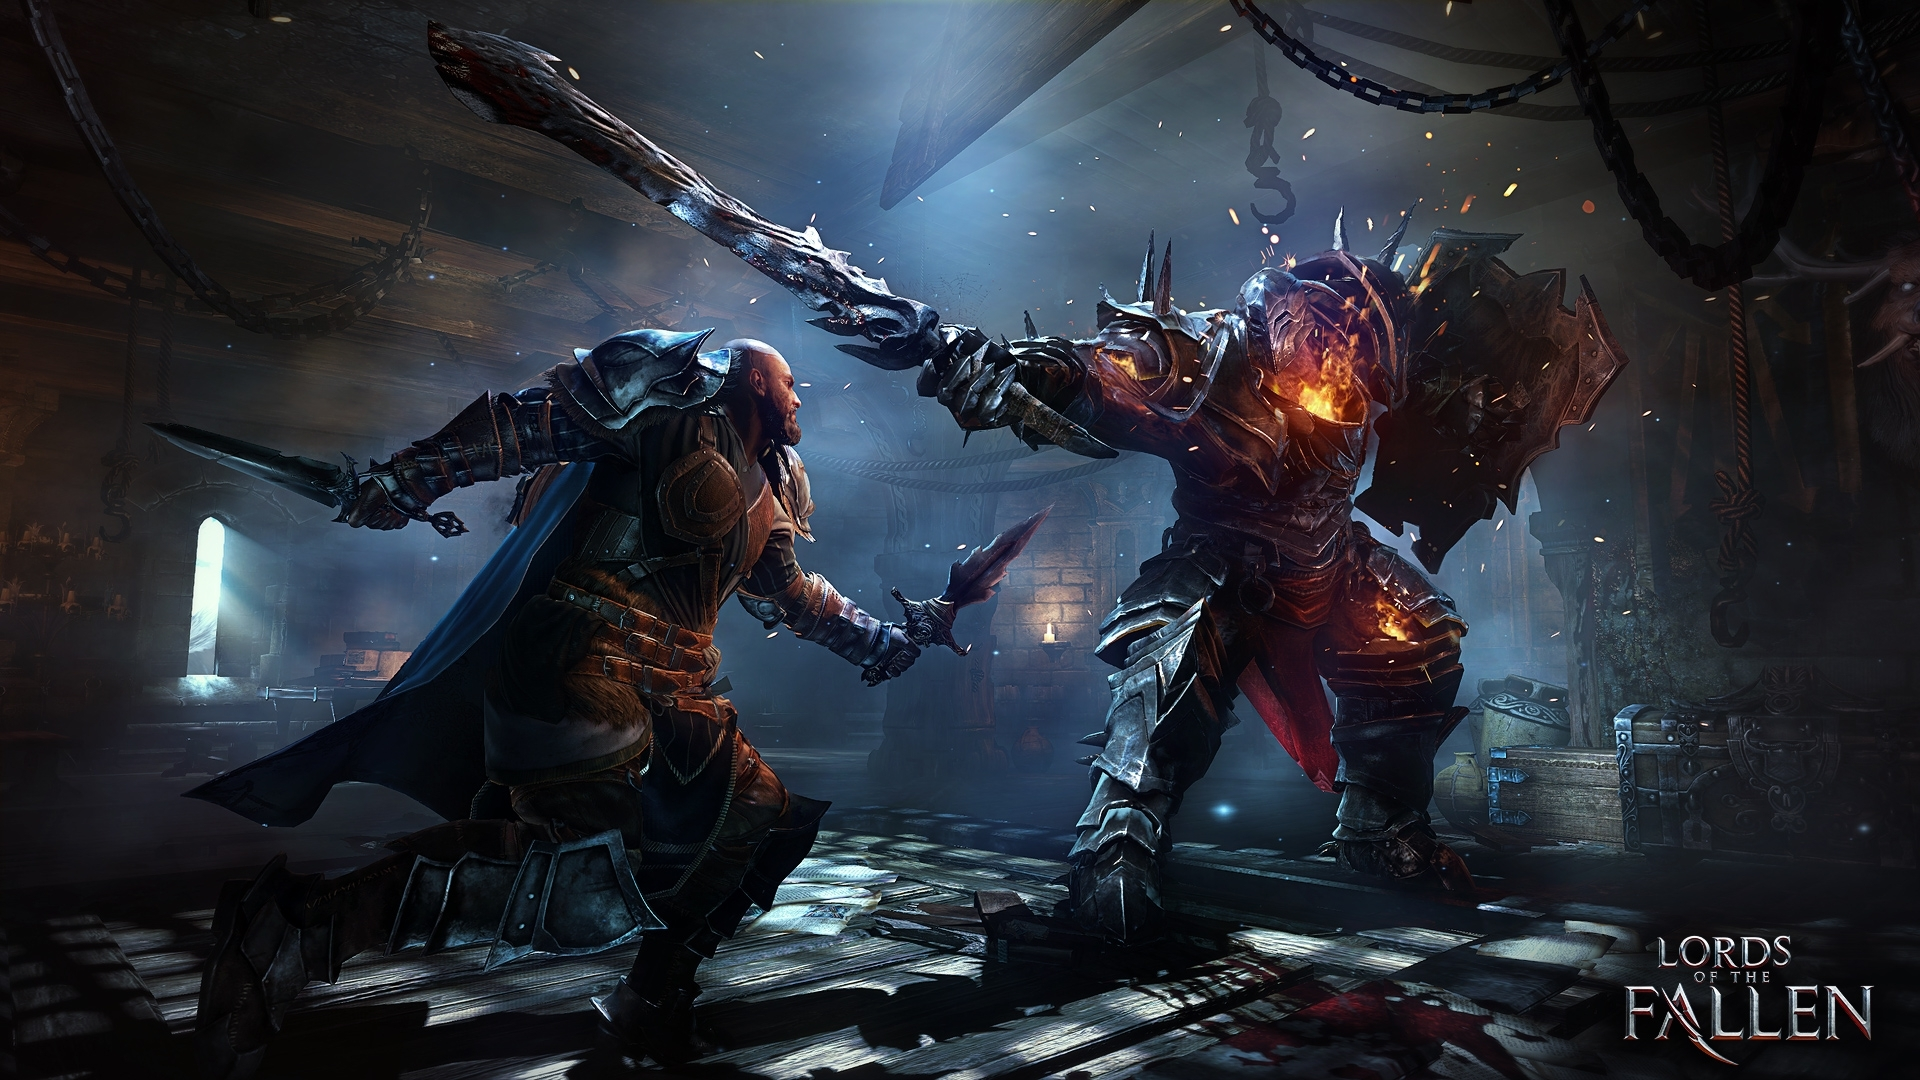 lords of the fallen game hd wallpaper 53062